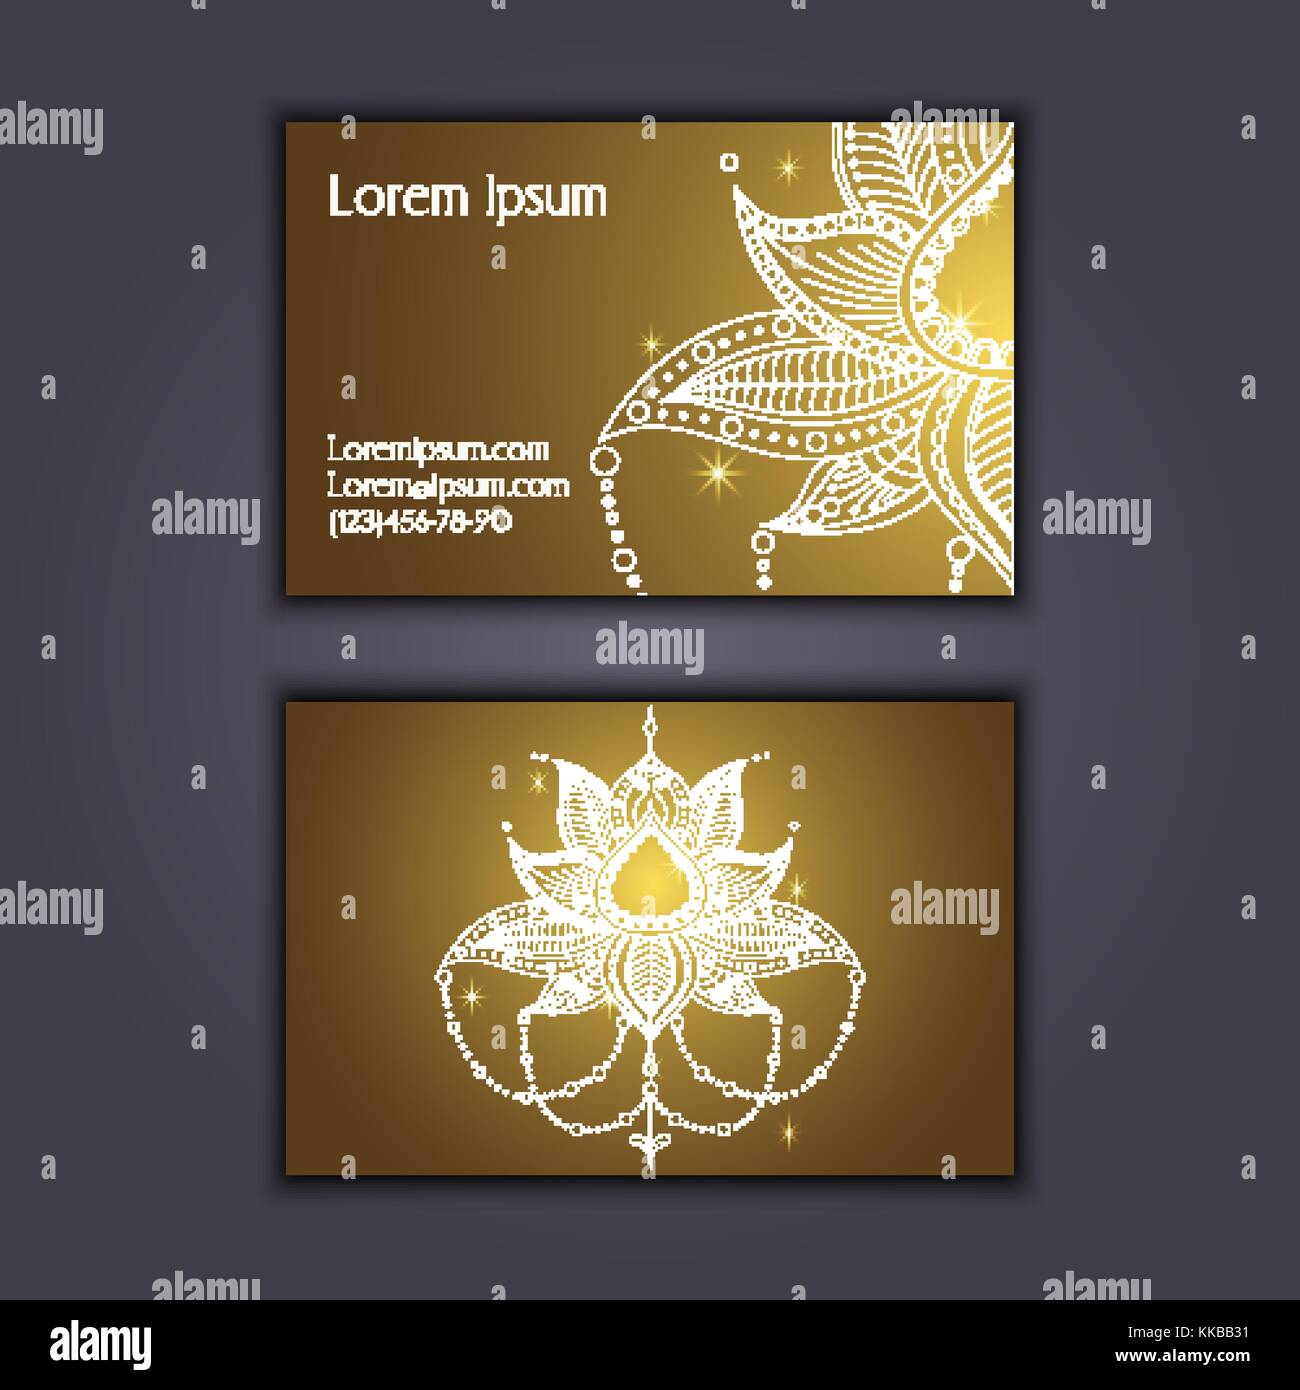 Visiting Card Vectors Stock Photos & Visiting Card Vectors Stock ...